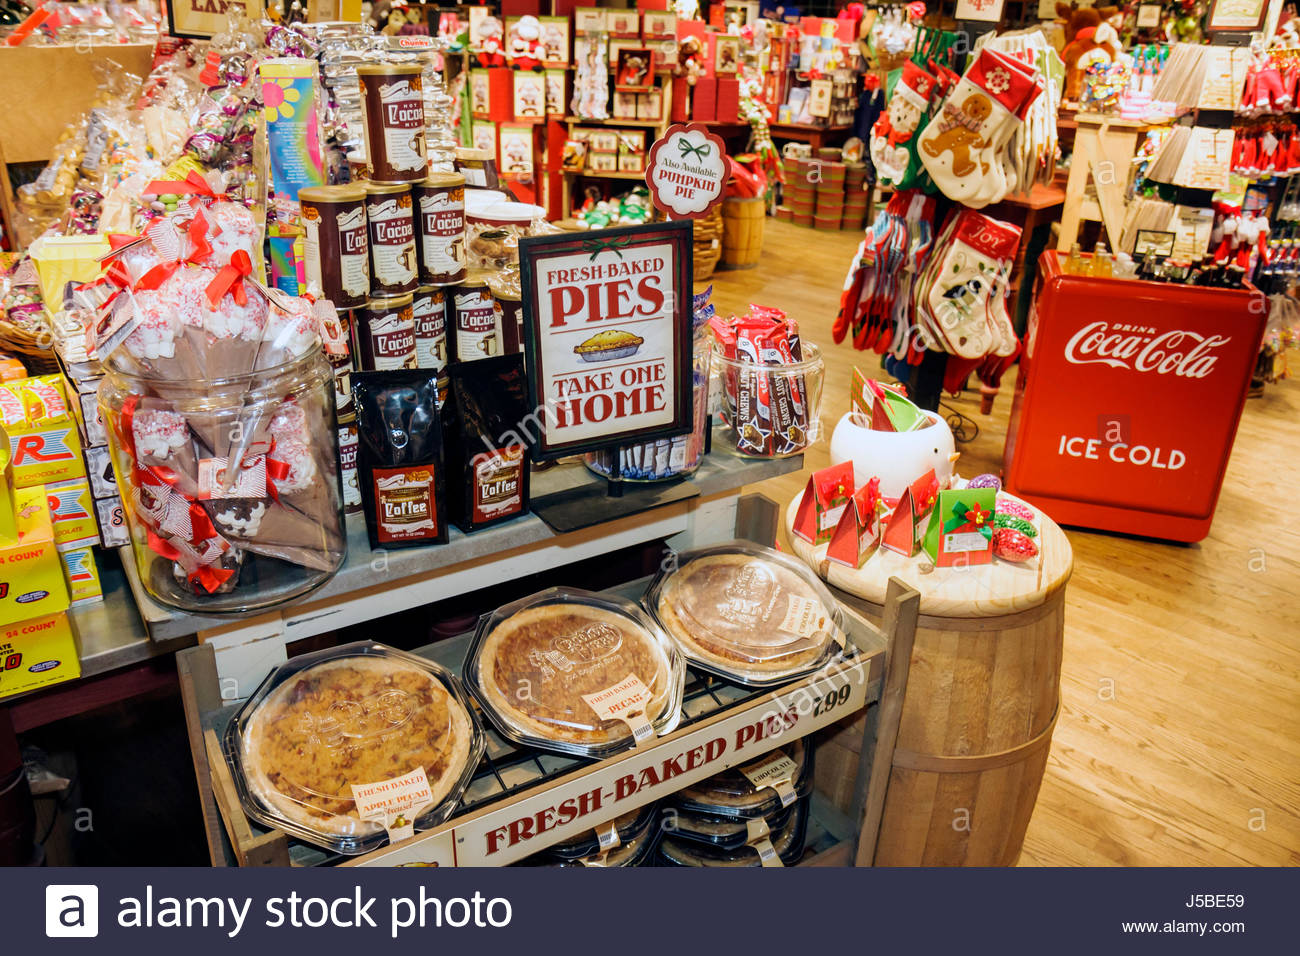 chain of cracker stock photos u0026 chain of cracker stock images alamy